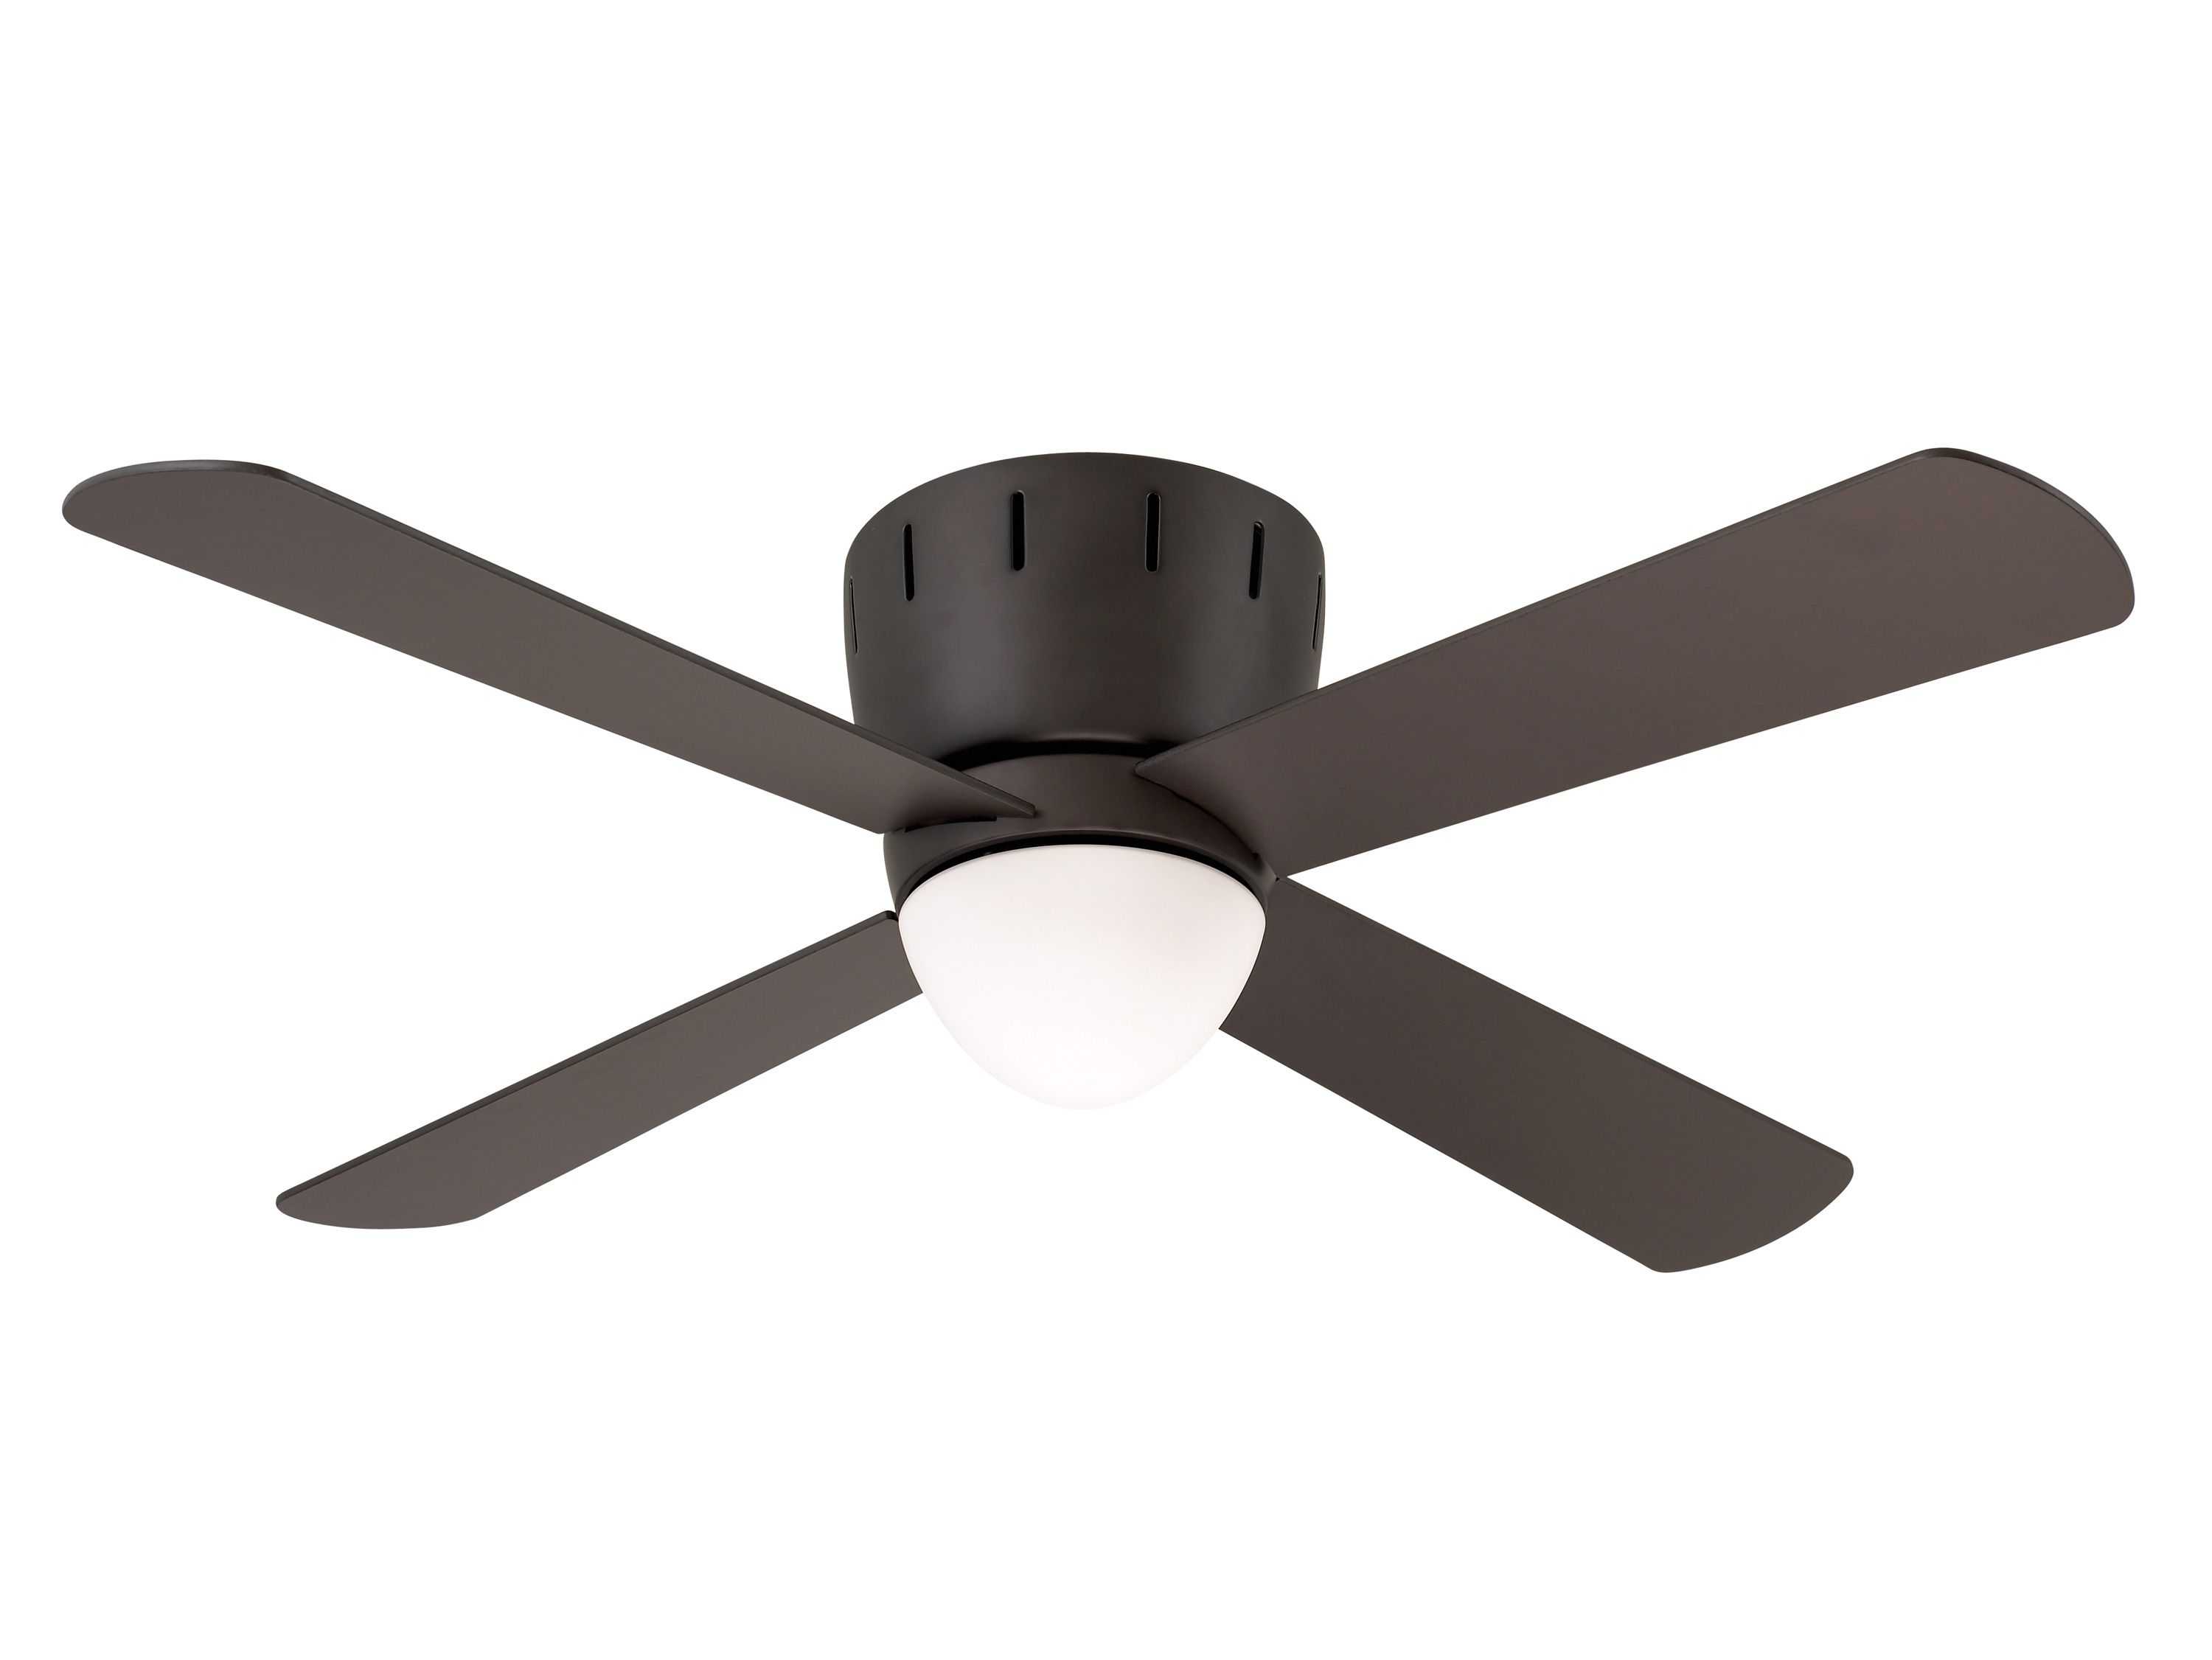 When ceiling height clearance is a concern the Wyatt ceiling fan